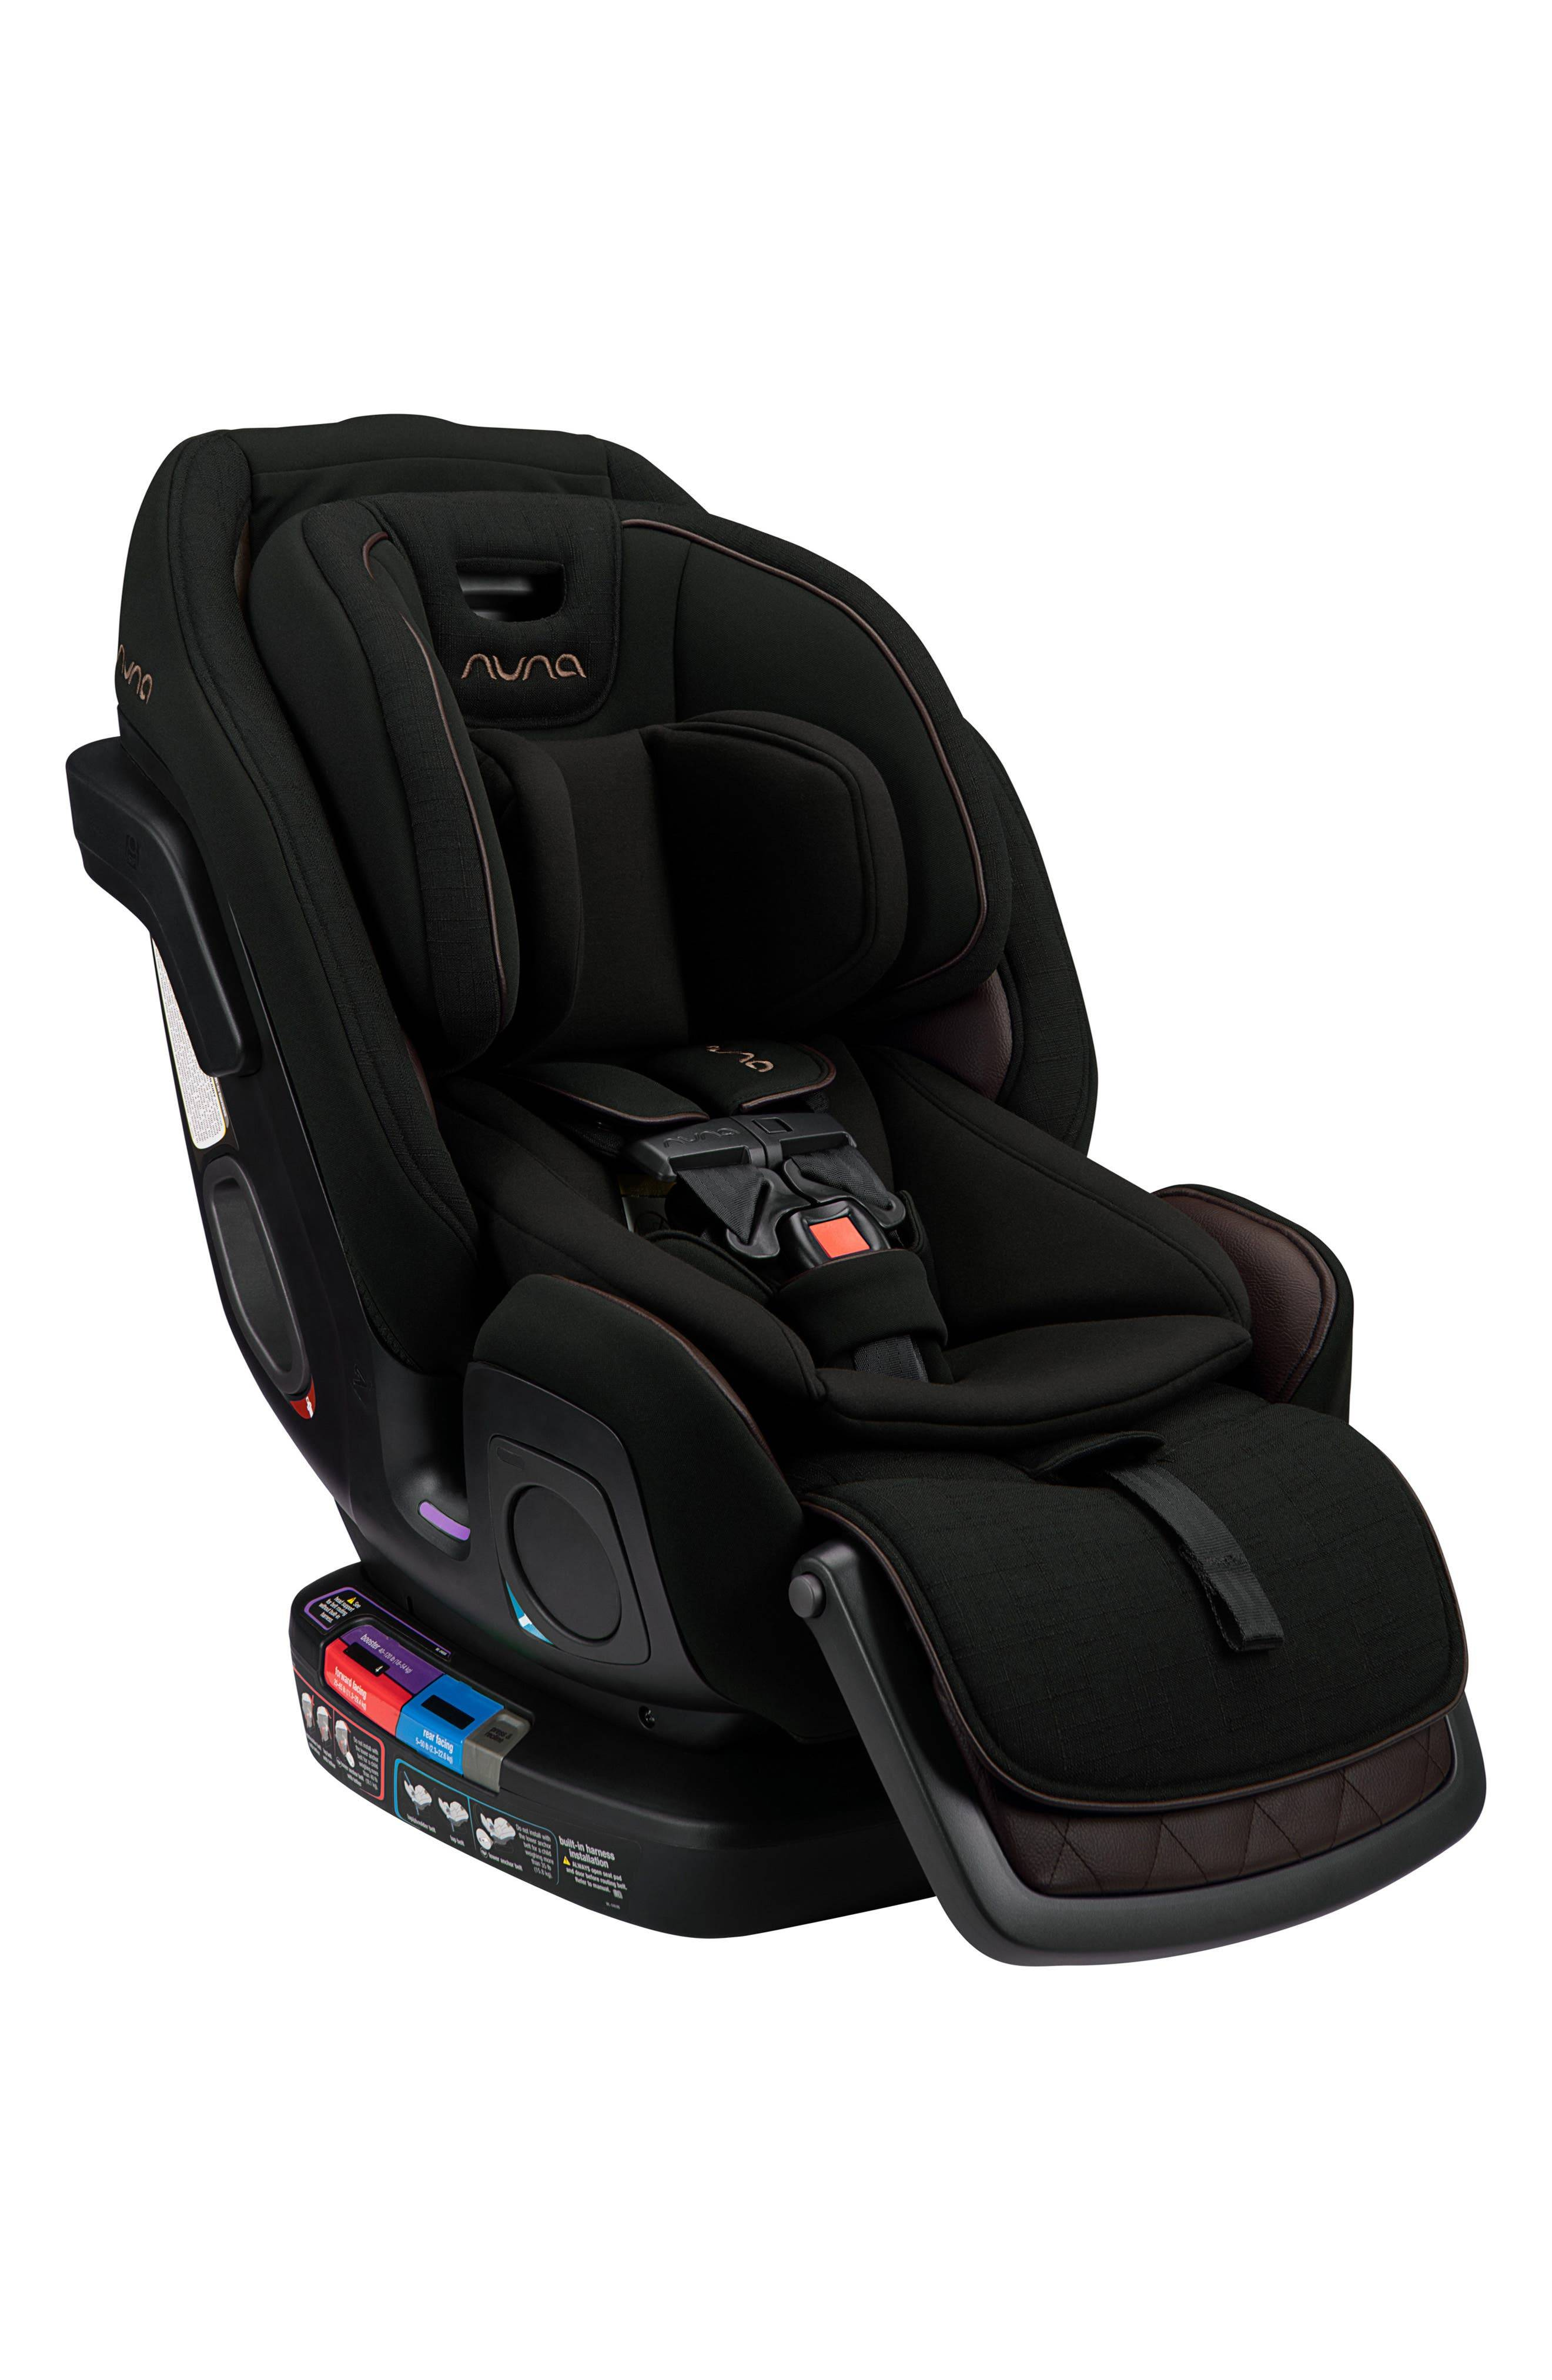 Nuna Infant Nuna Exec(TM) All-In-One Car Seat, Size One Size - Black (Nordstrom Exclusive)